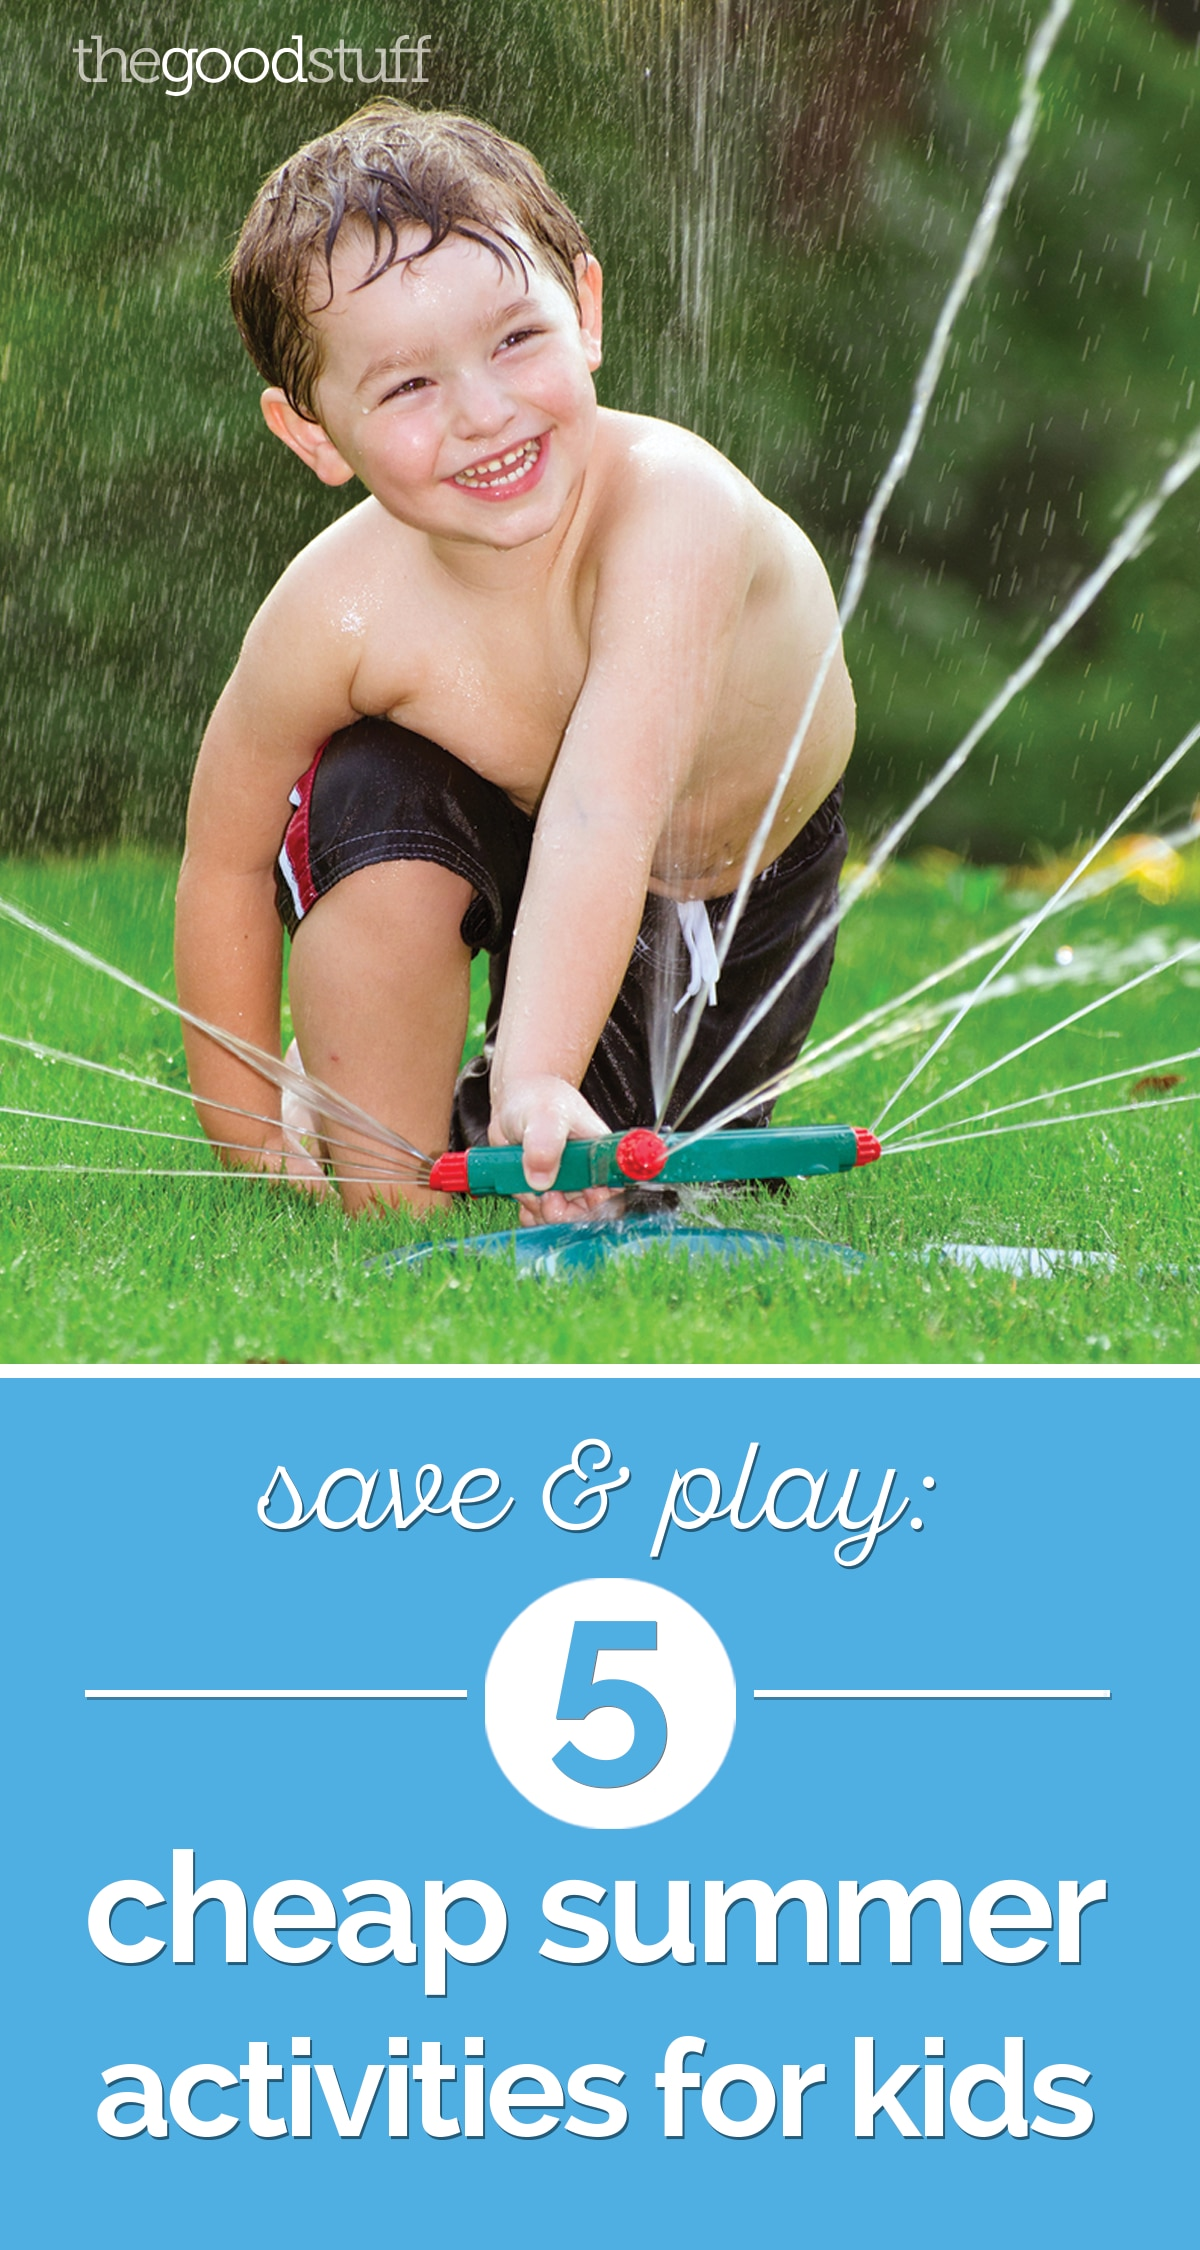 Save & Play: 5 Cheap Summer Activities for Kids | thegoodstuff